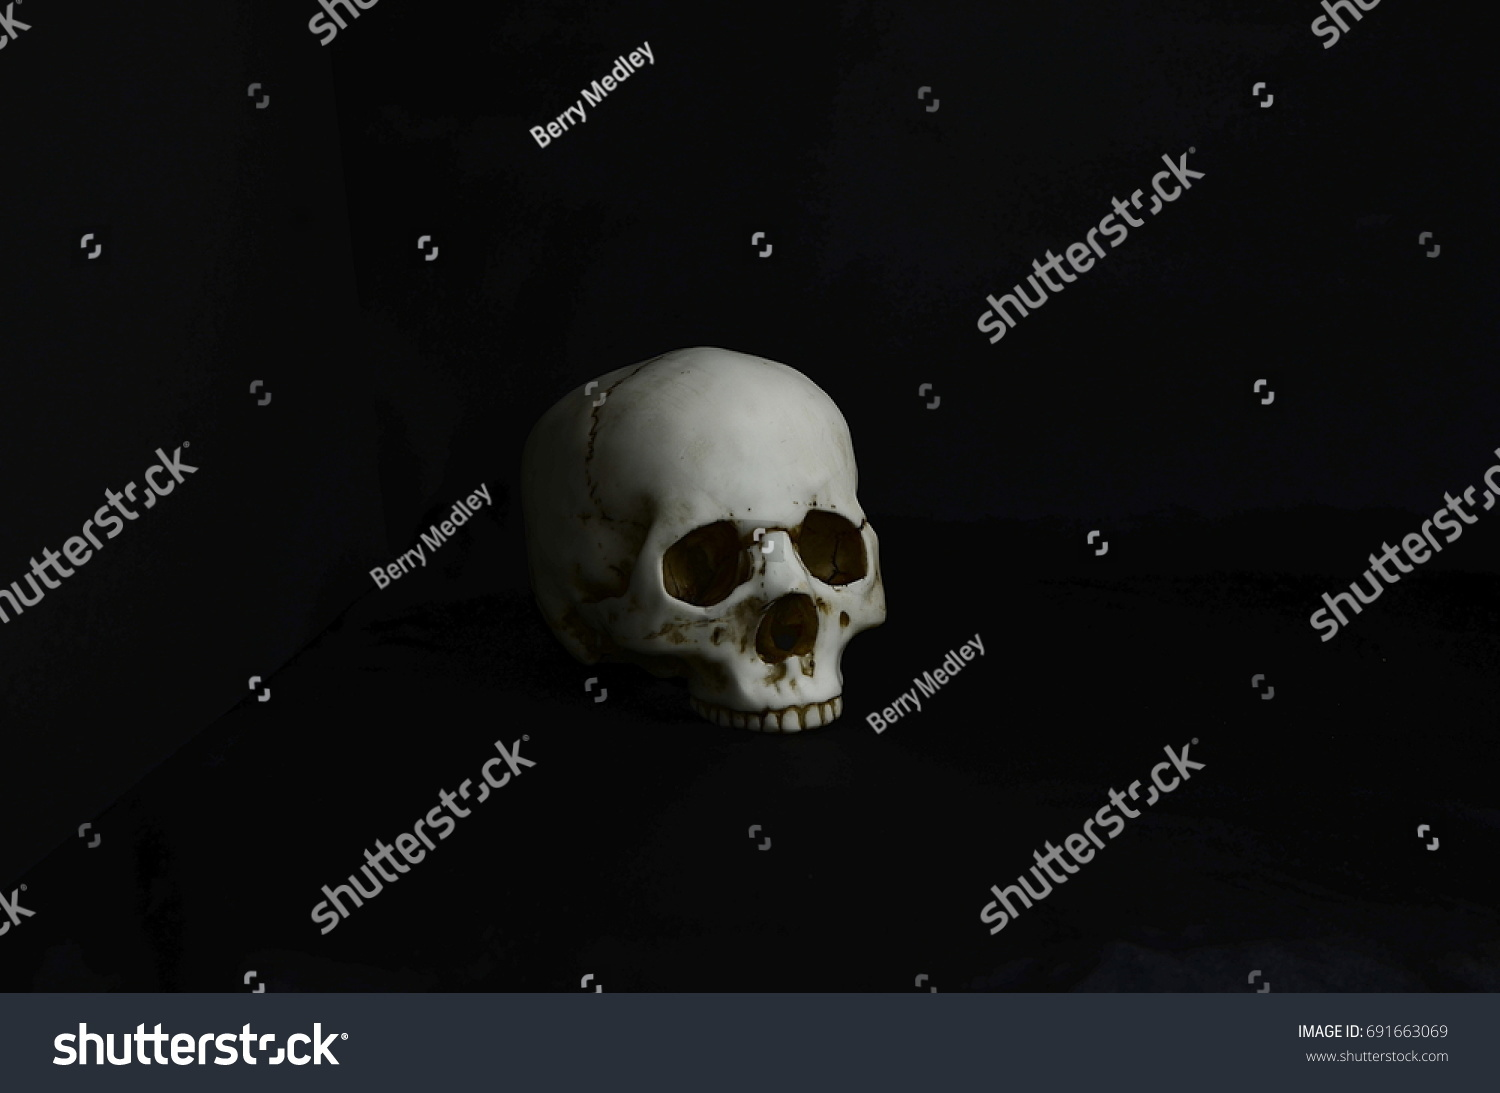 An Incomplete Human Skull Missing The Lower Jaw Bone Set Against A